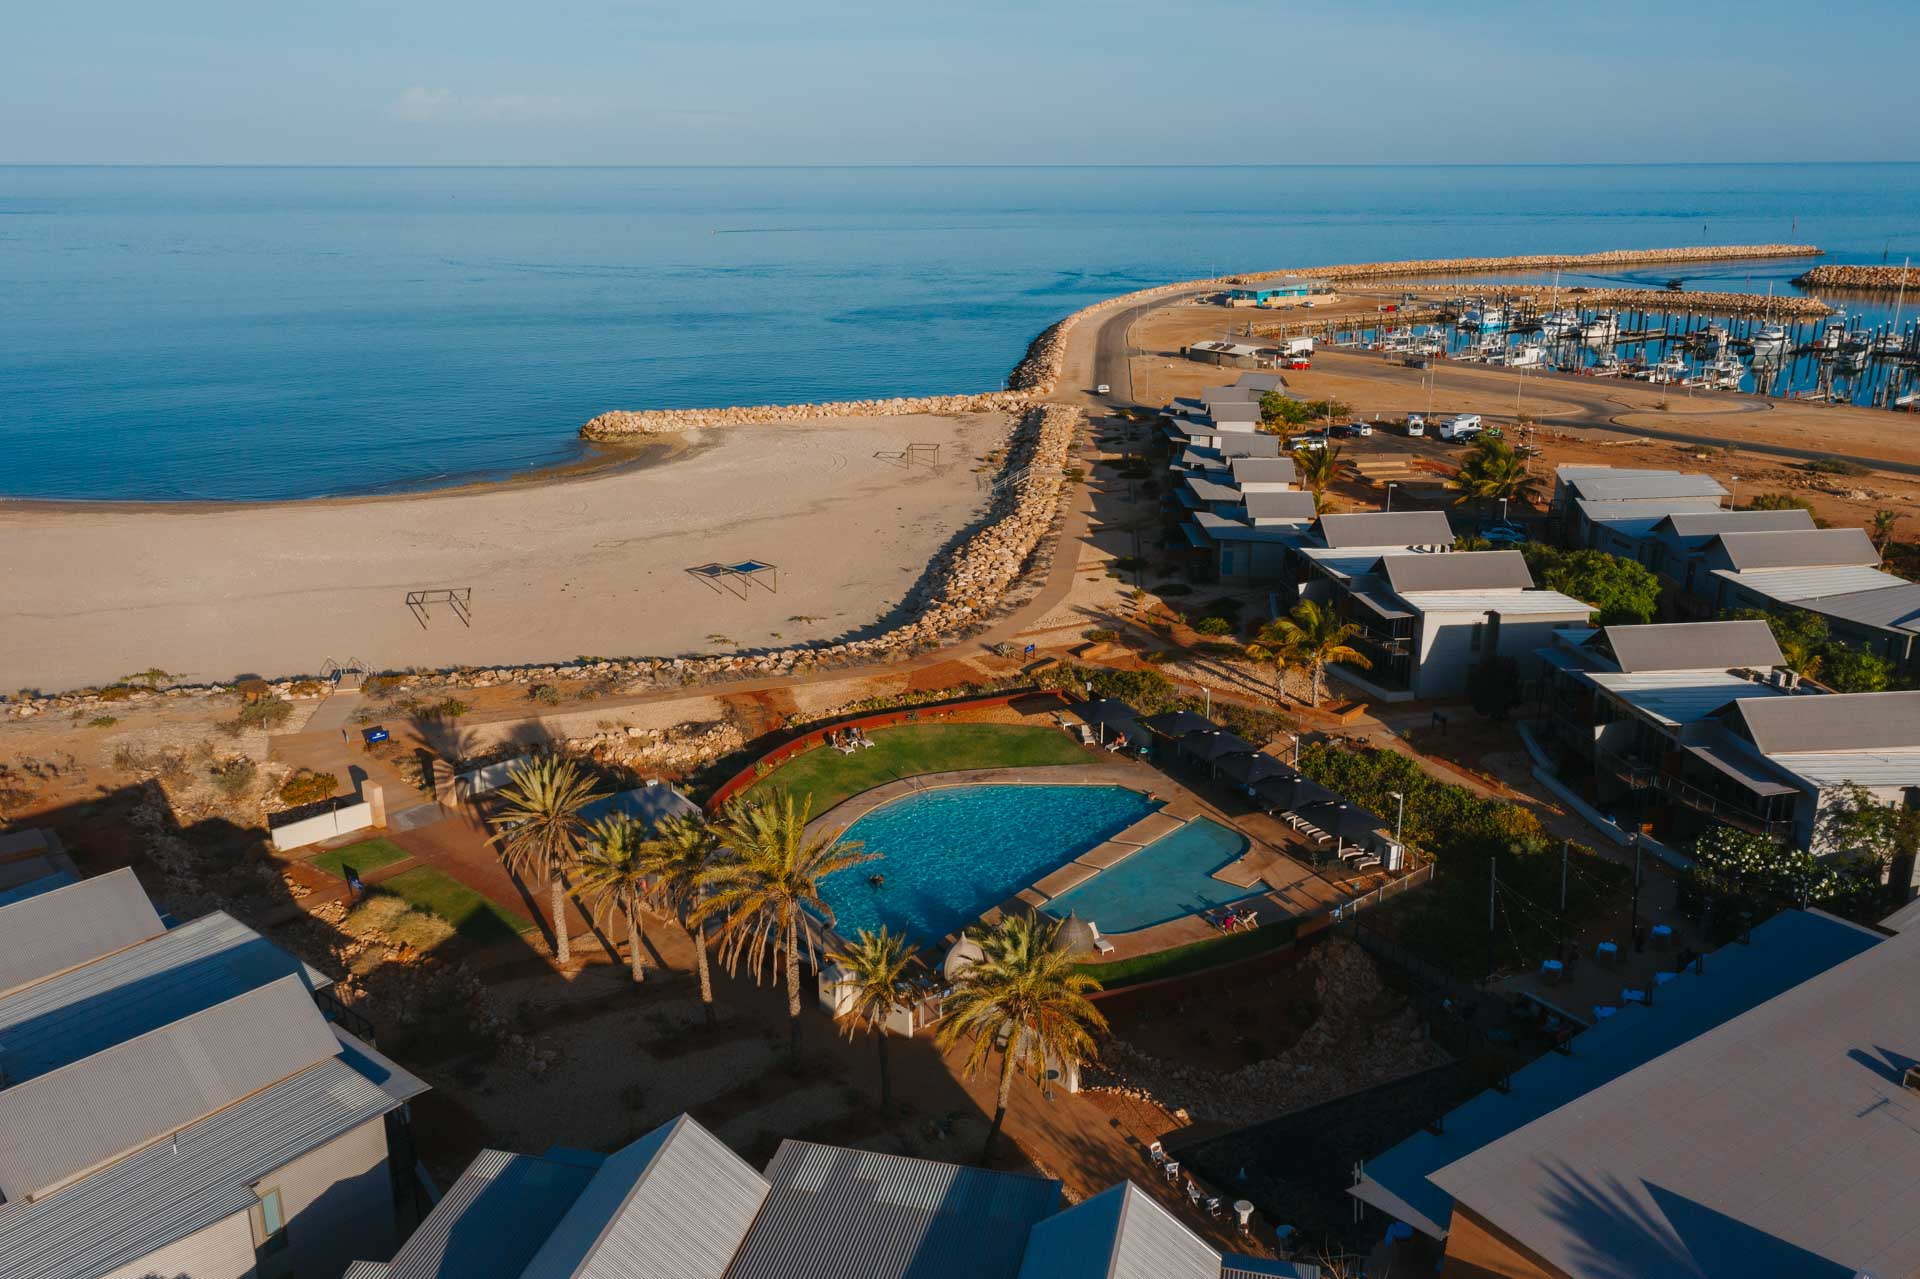 accommodation in exmouth, exmouth accommodation, accommodation at exmouth